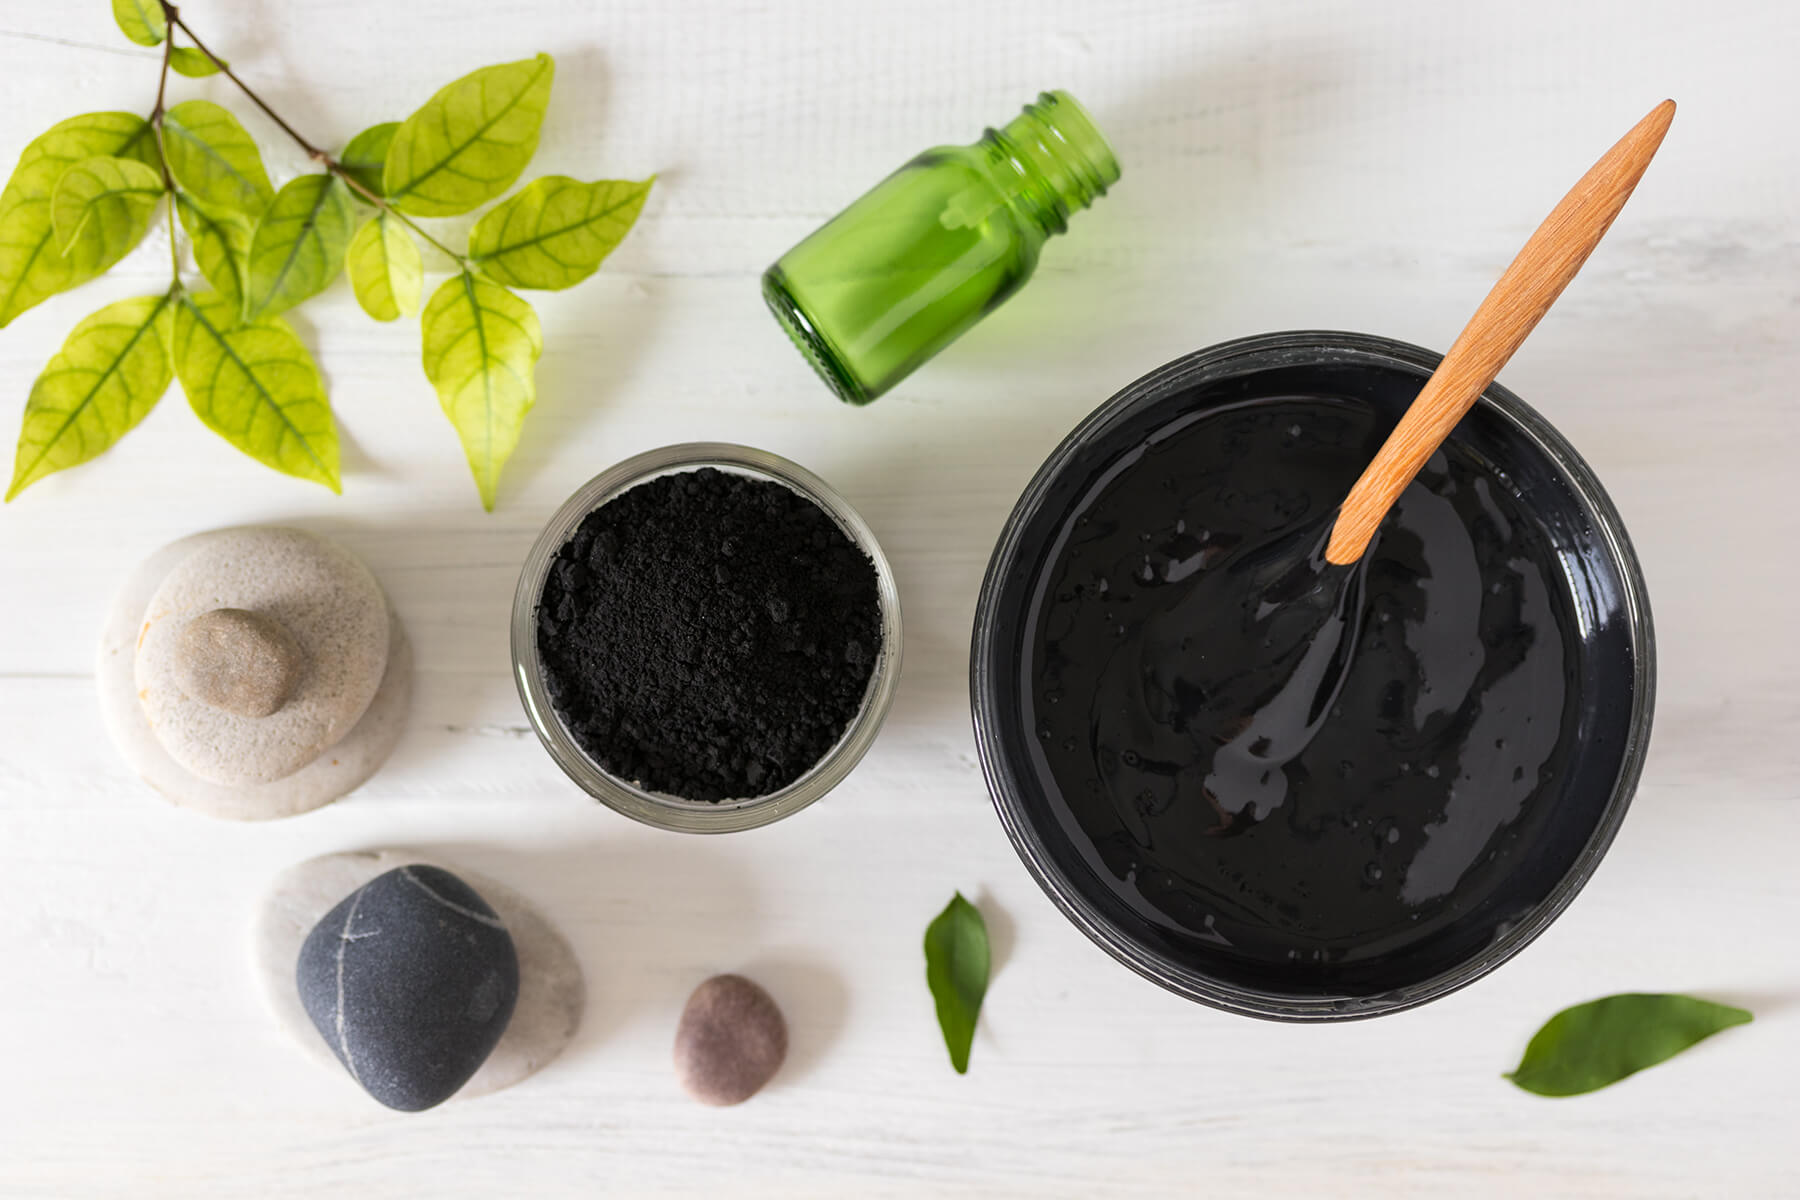 Charcoal face mask ingredients on a table